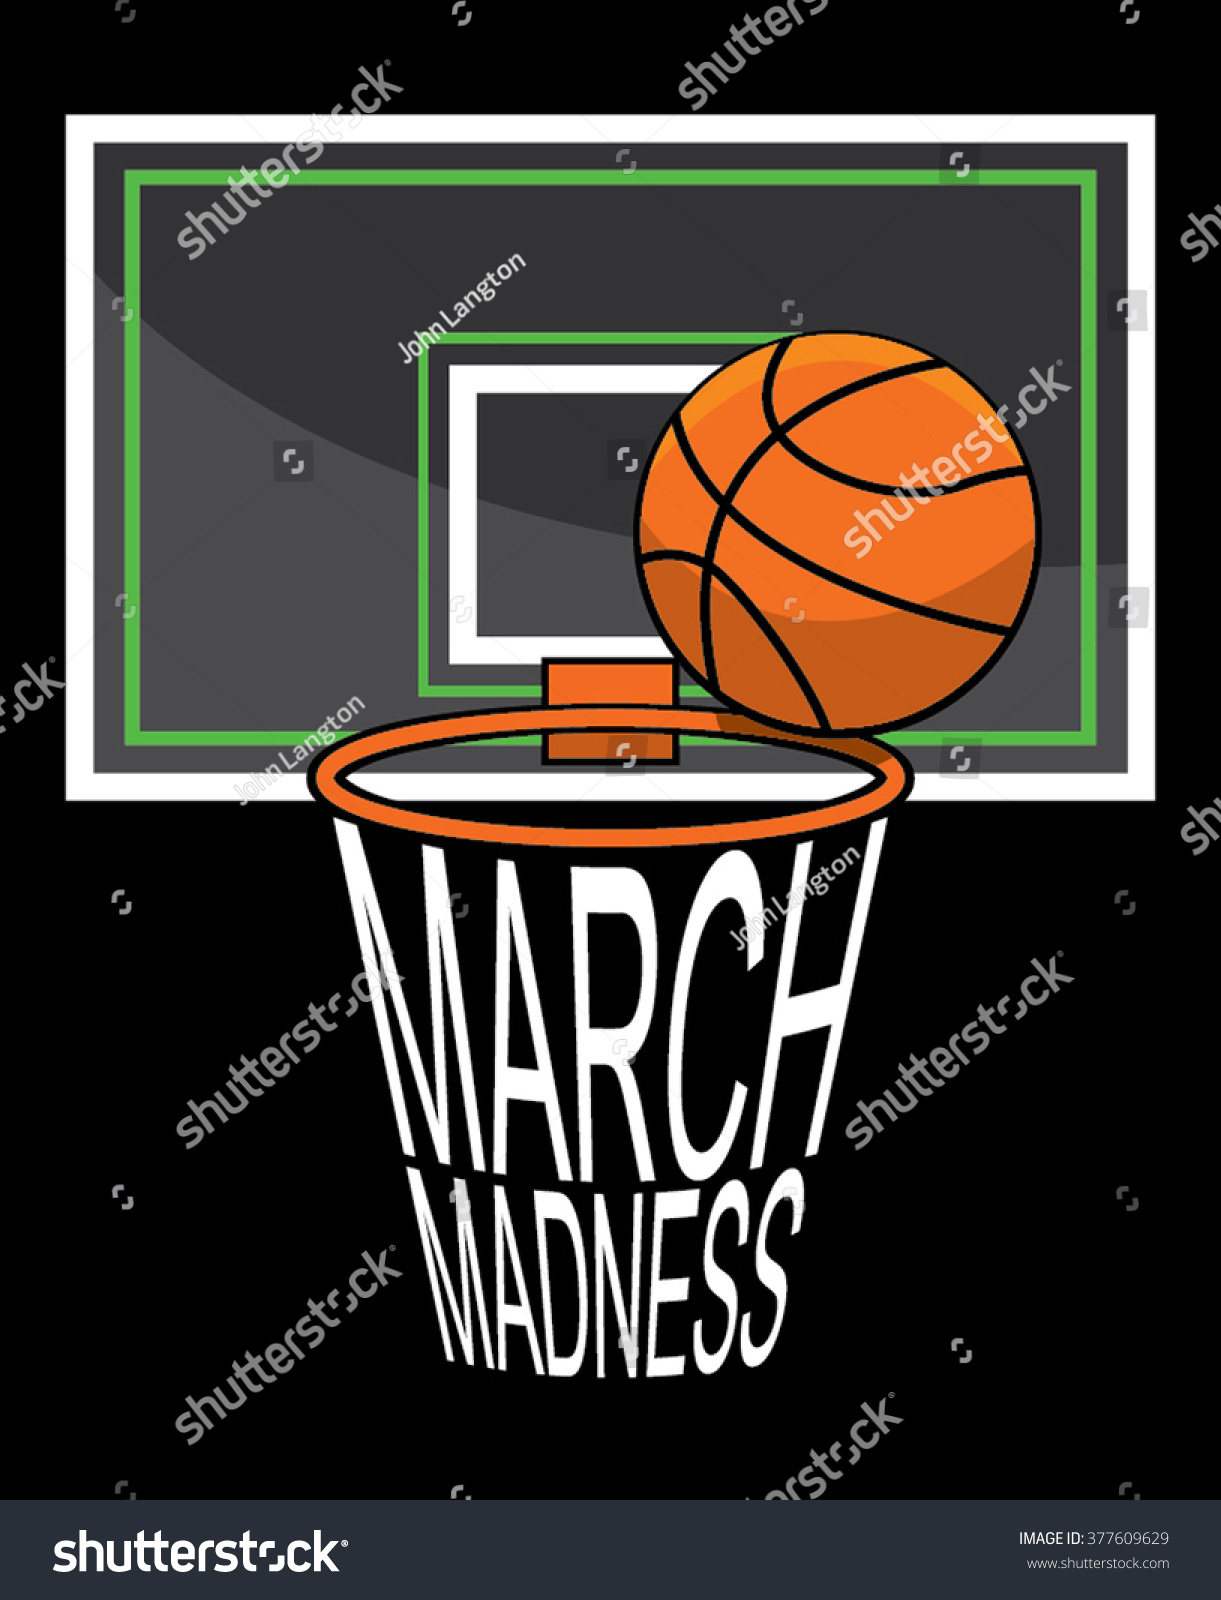 March Madness Stock Vector 377609629 - Shutterstock